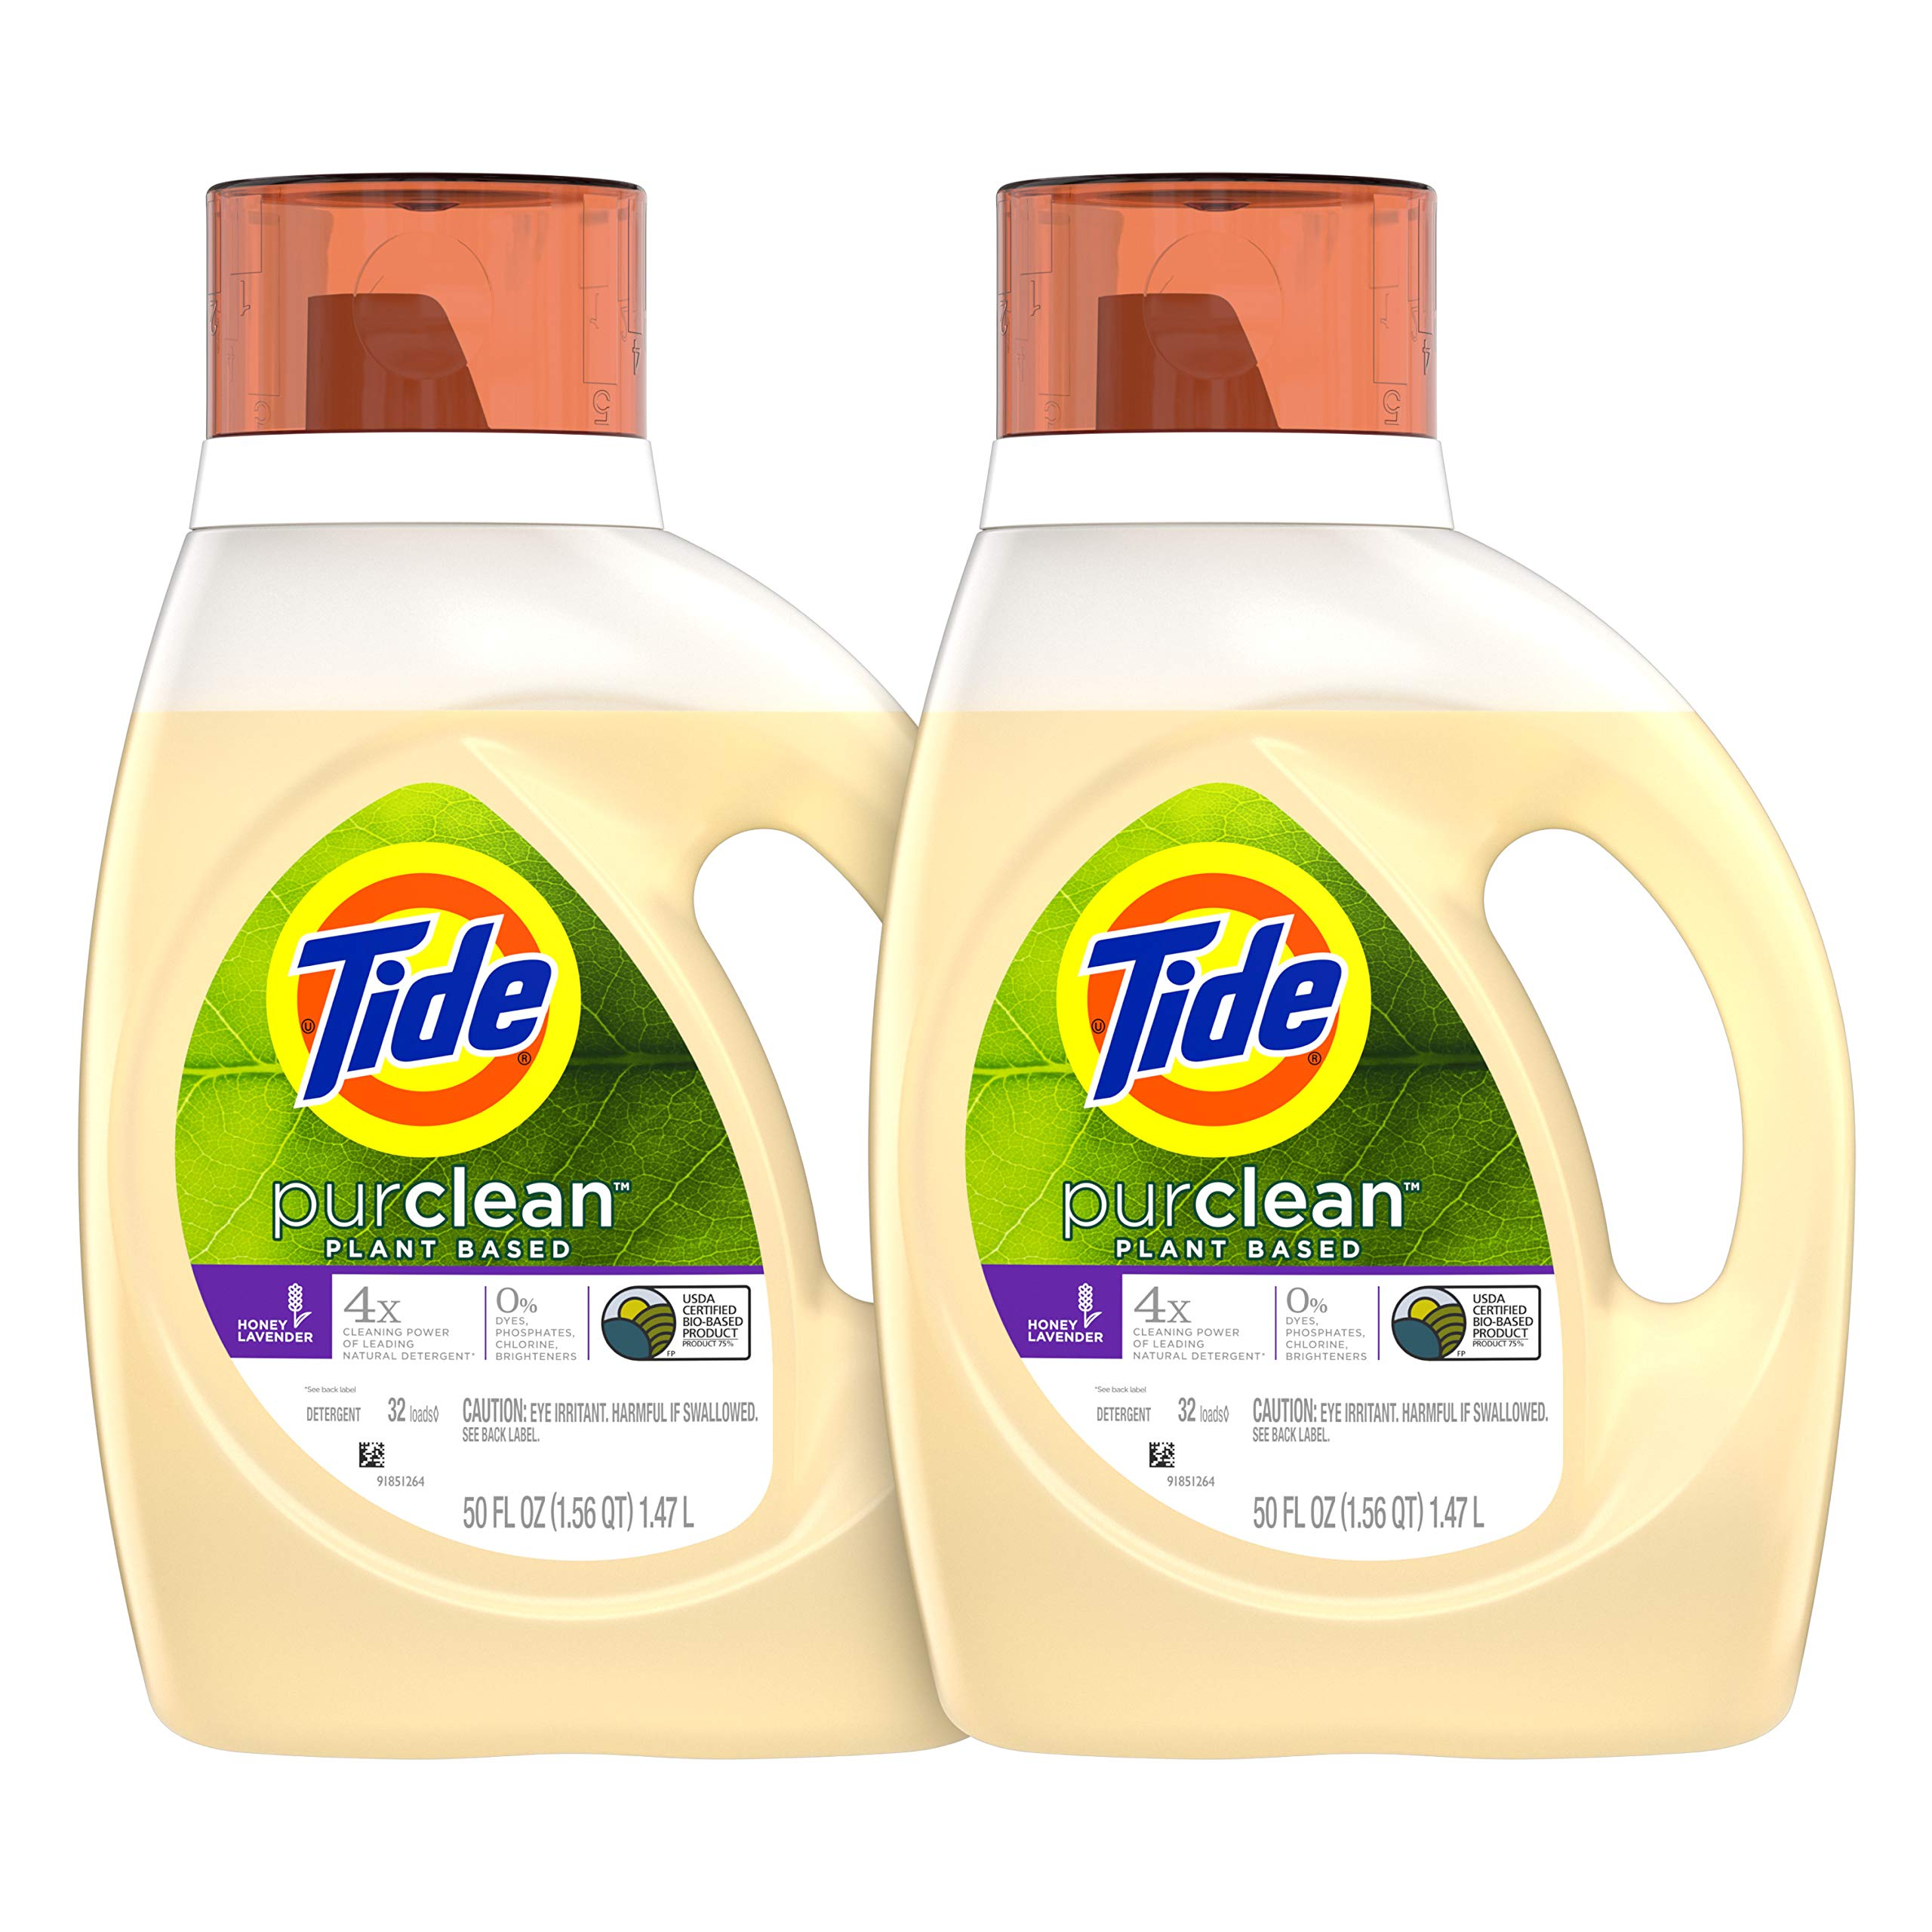 Tide Purclean Plant-Based Laundry Detergent Liquid, Honey Lavender Scent, 50 oz, Pack of 2, 64 Loads Total (Packaging May Vary) by Tide